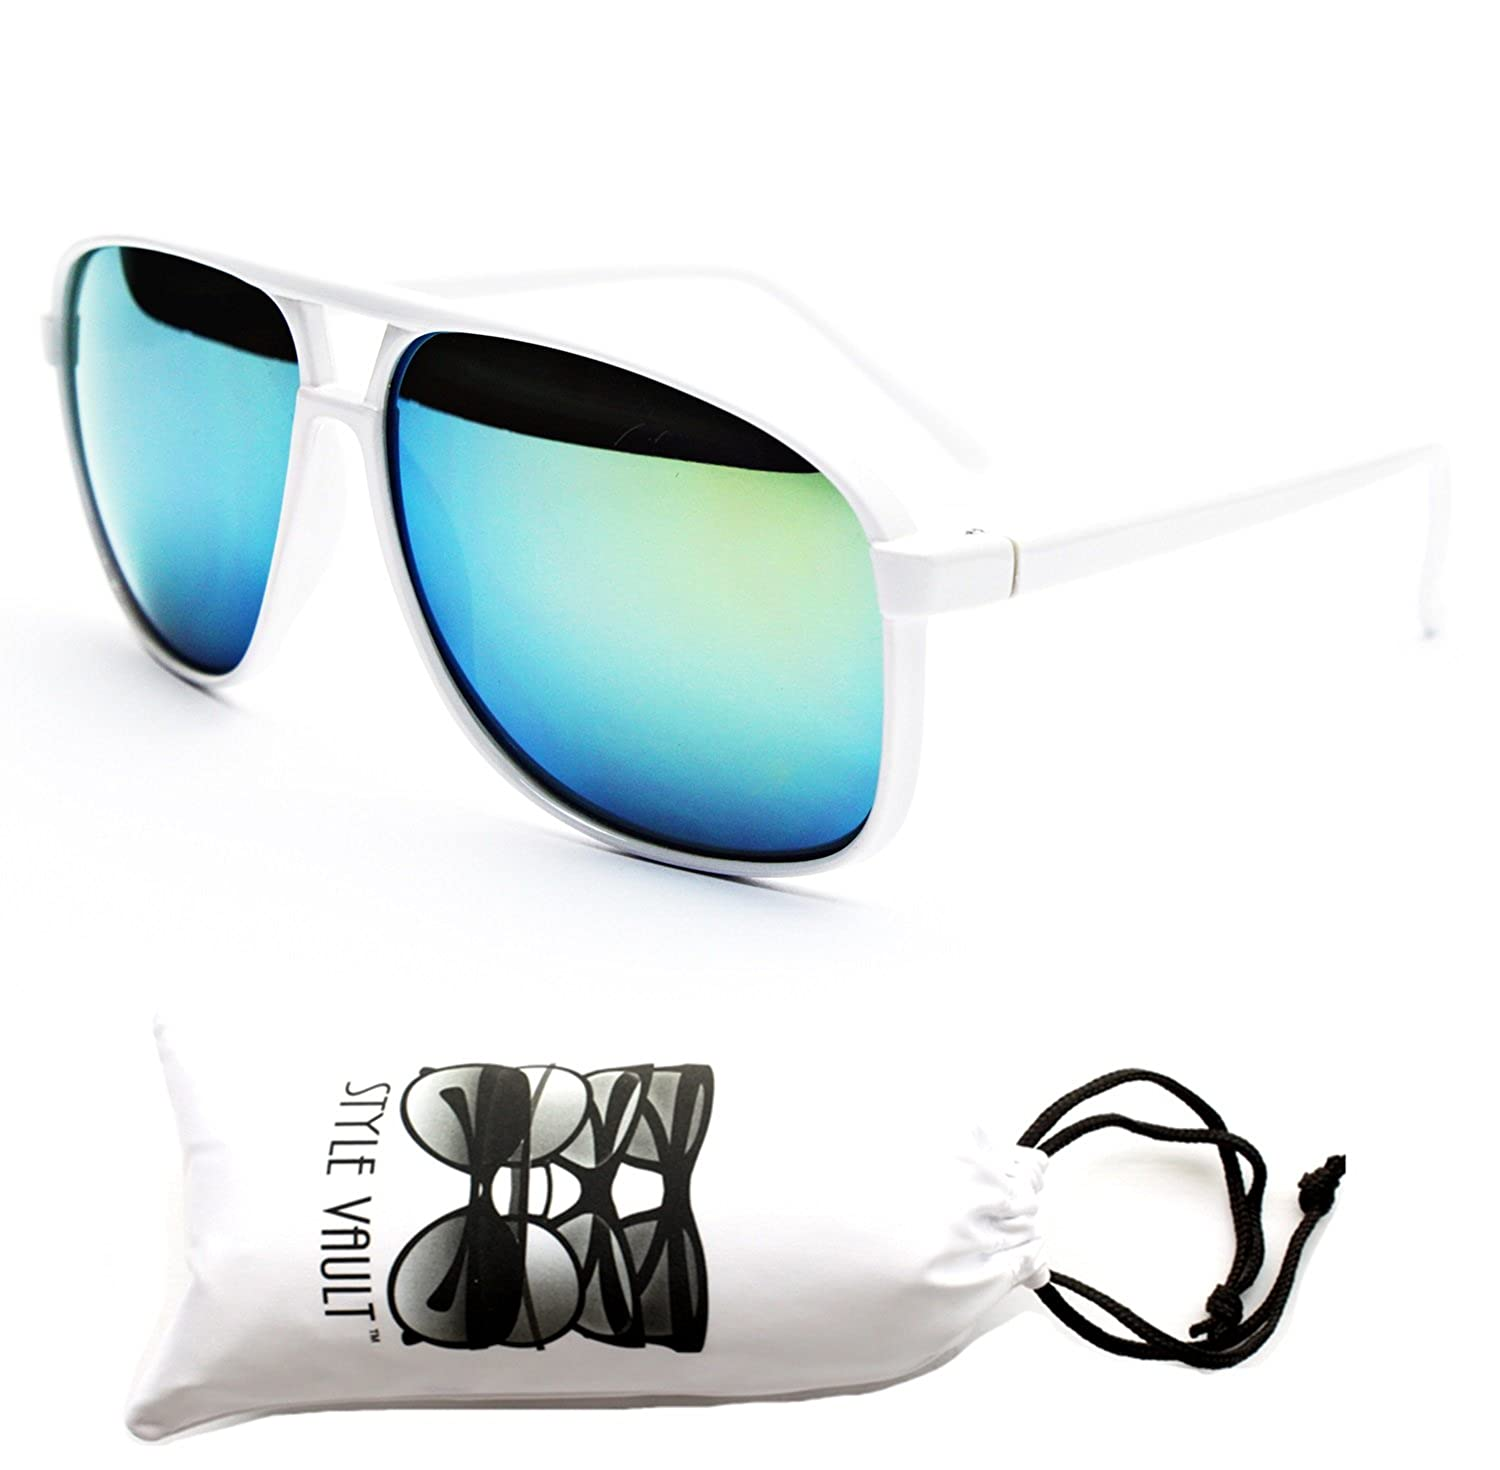 A160-vp Style Vault Turbo Aviator Sunglasses